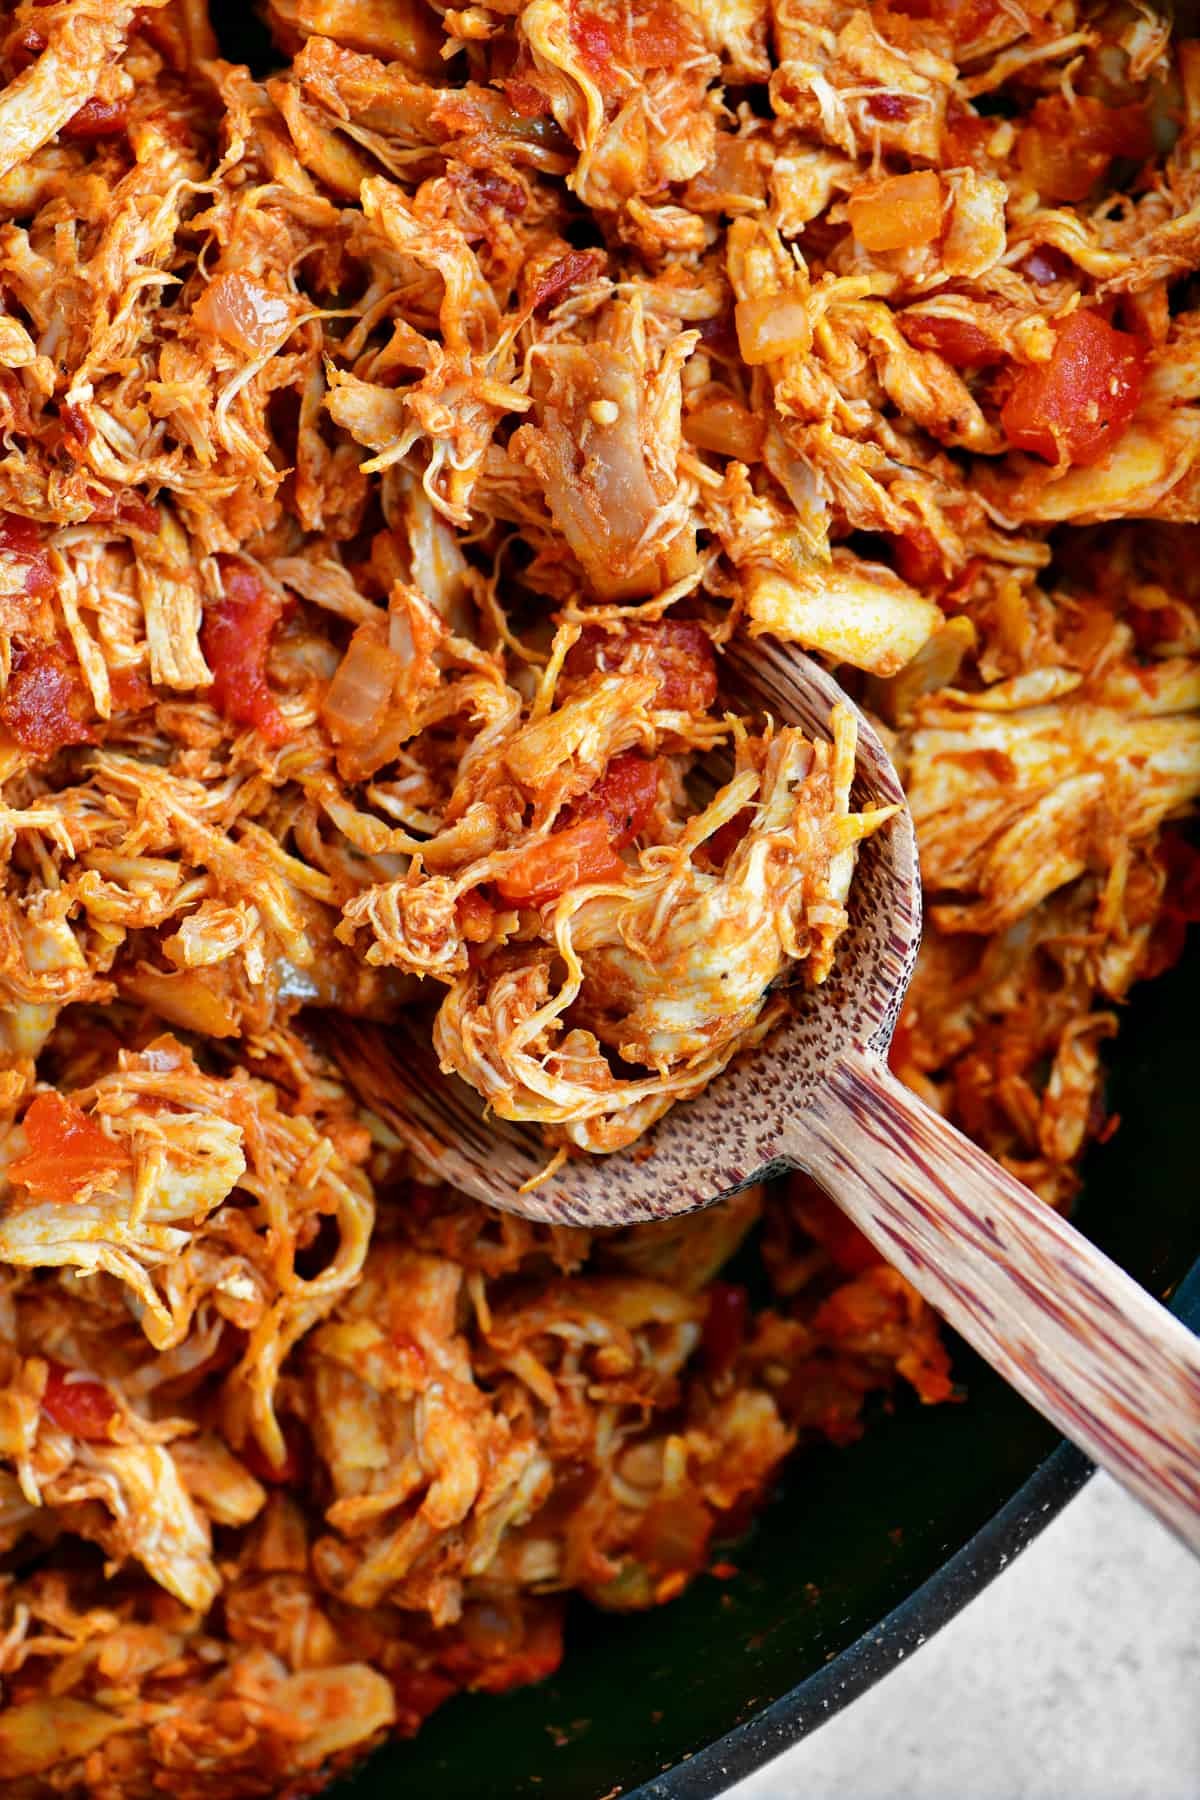 Chicken Tinga and a wooden spoon in a skillet